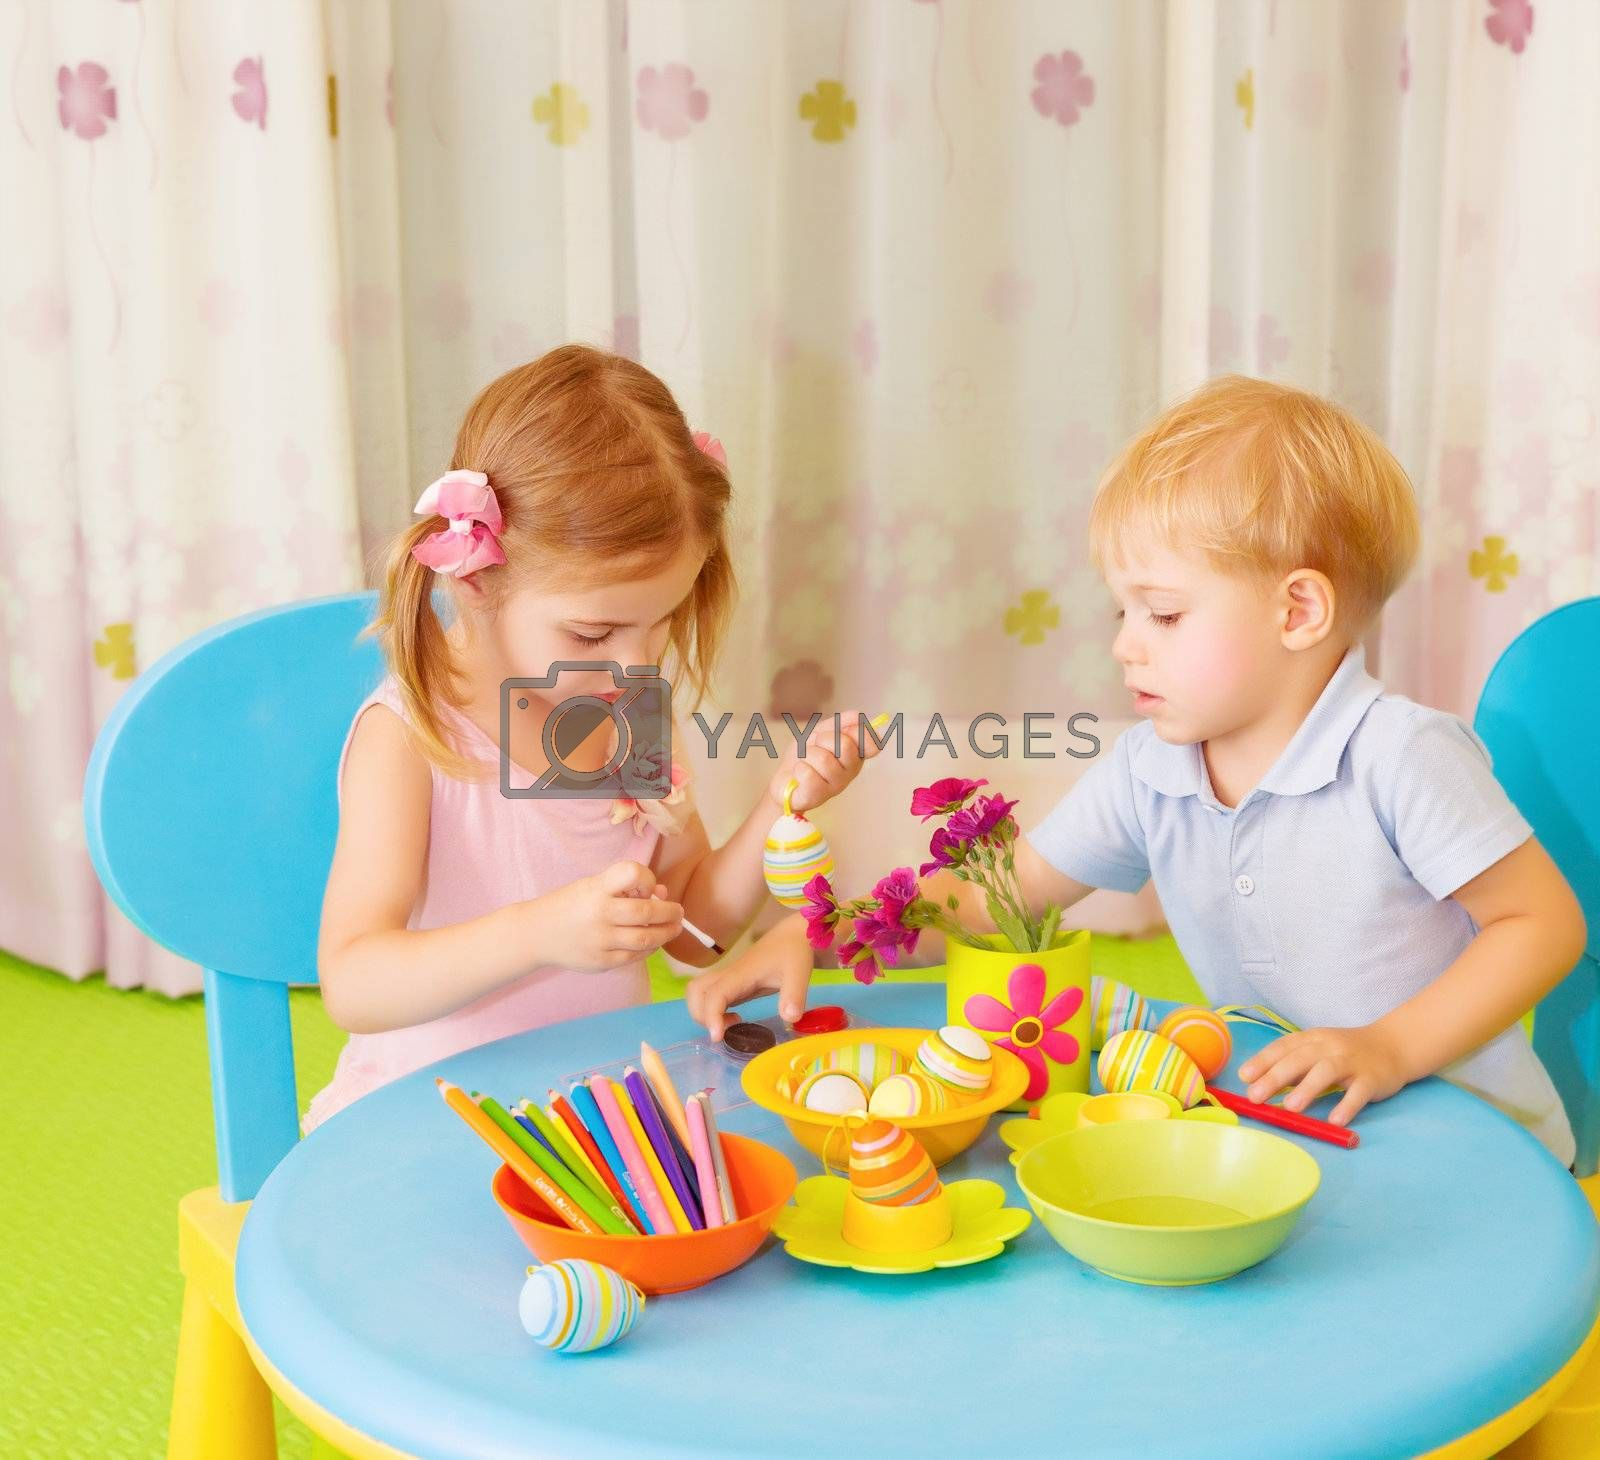 Royalty free image of Two kids painted Easter eggs by Anna_Omelchenko